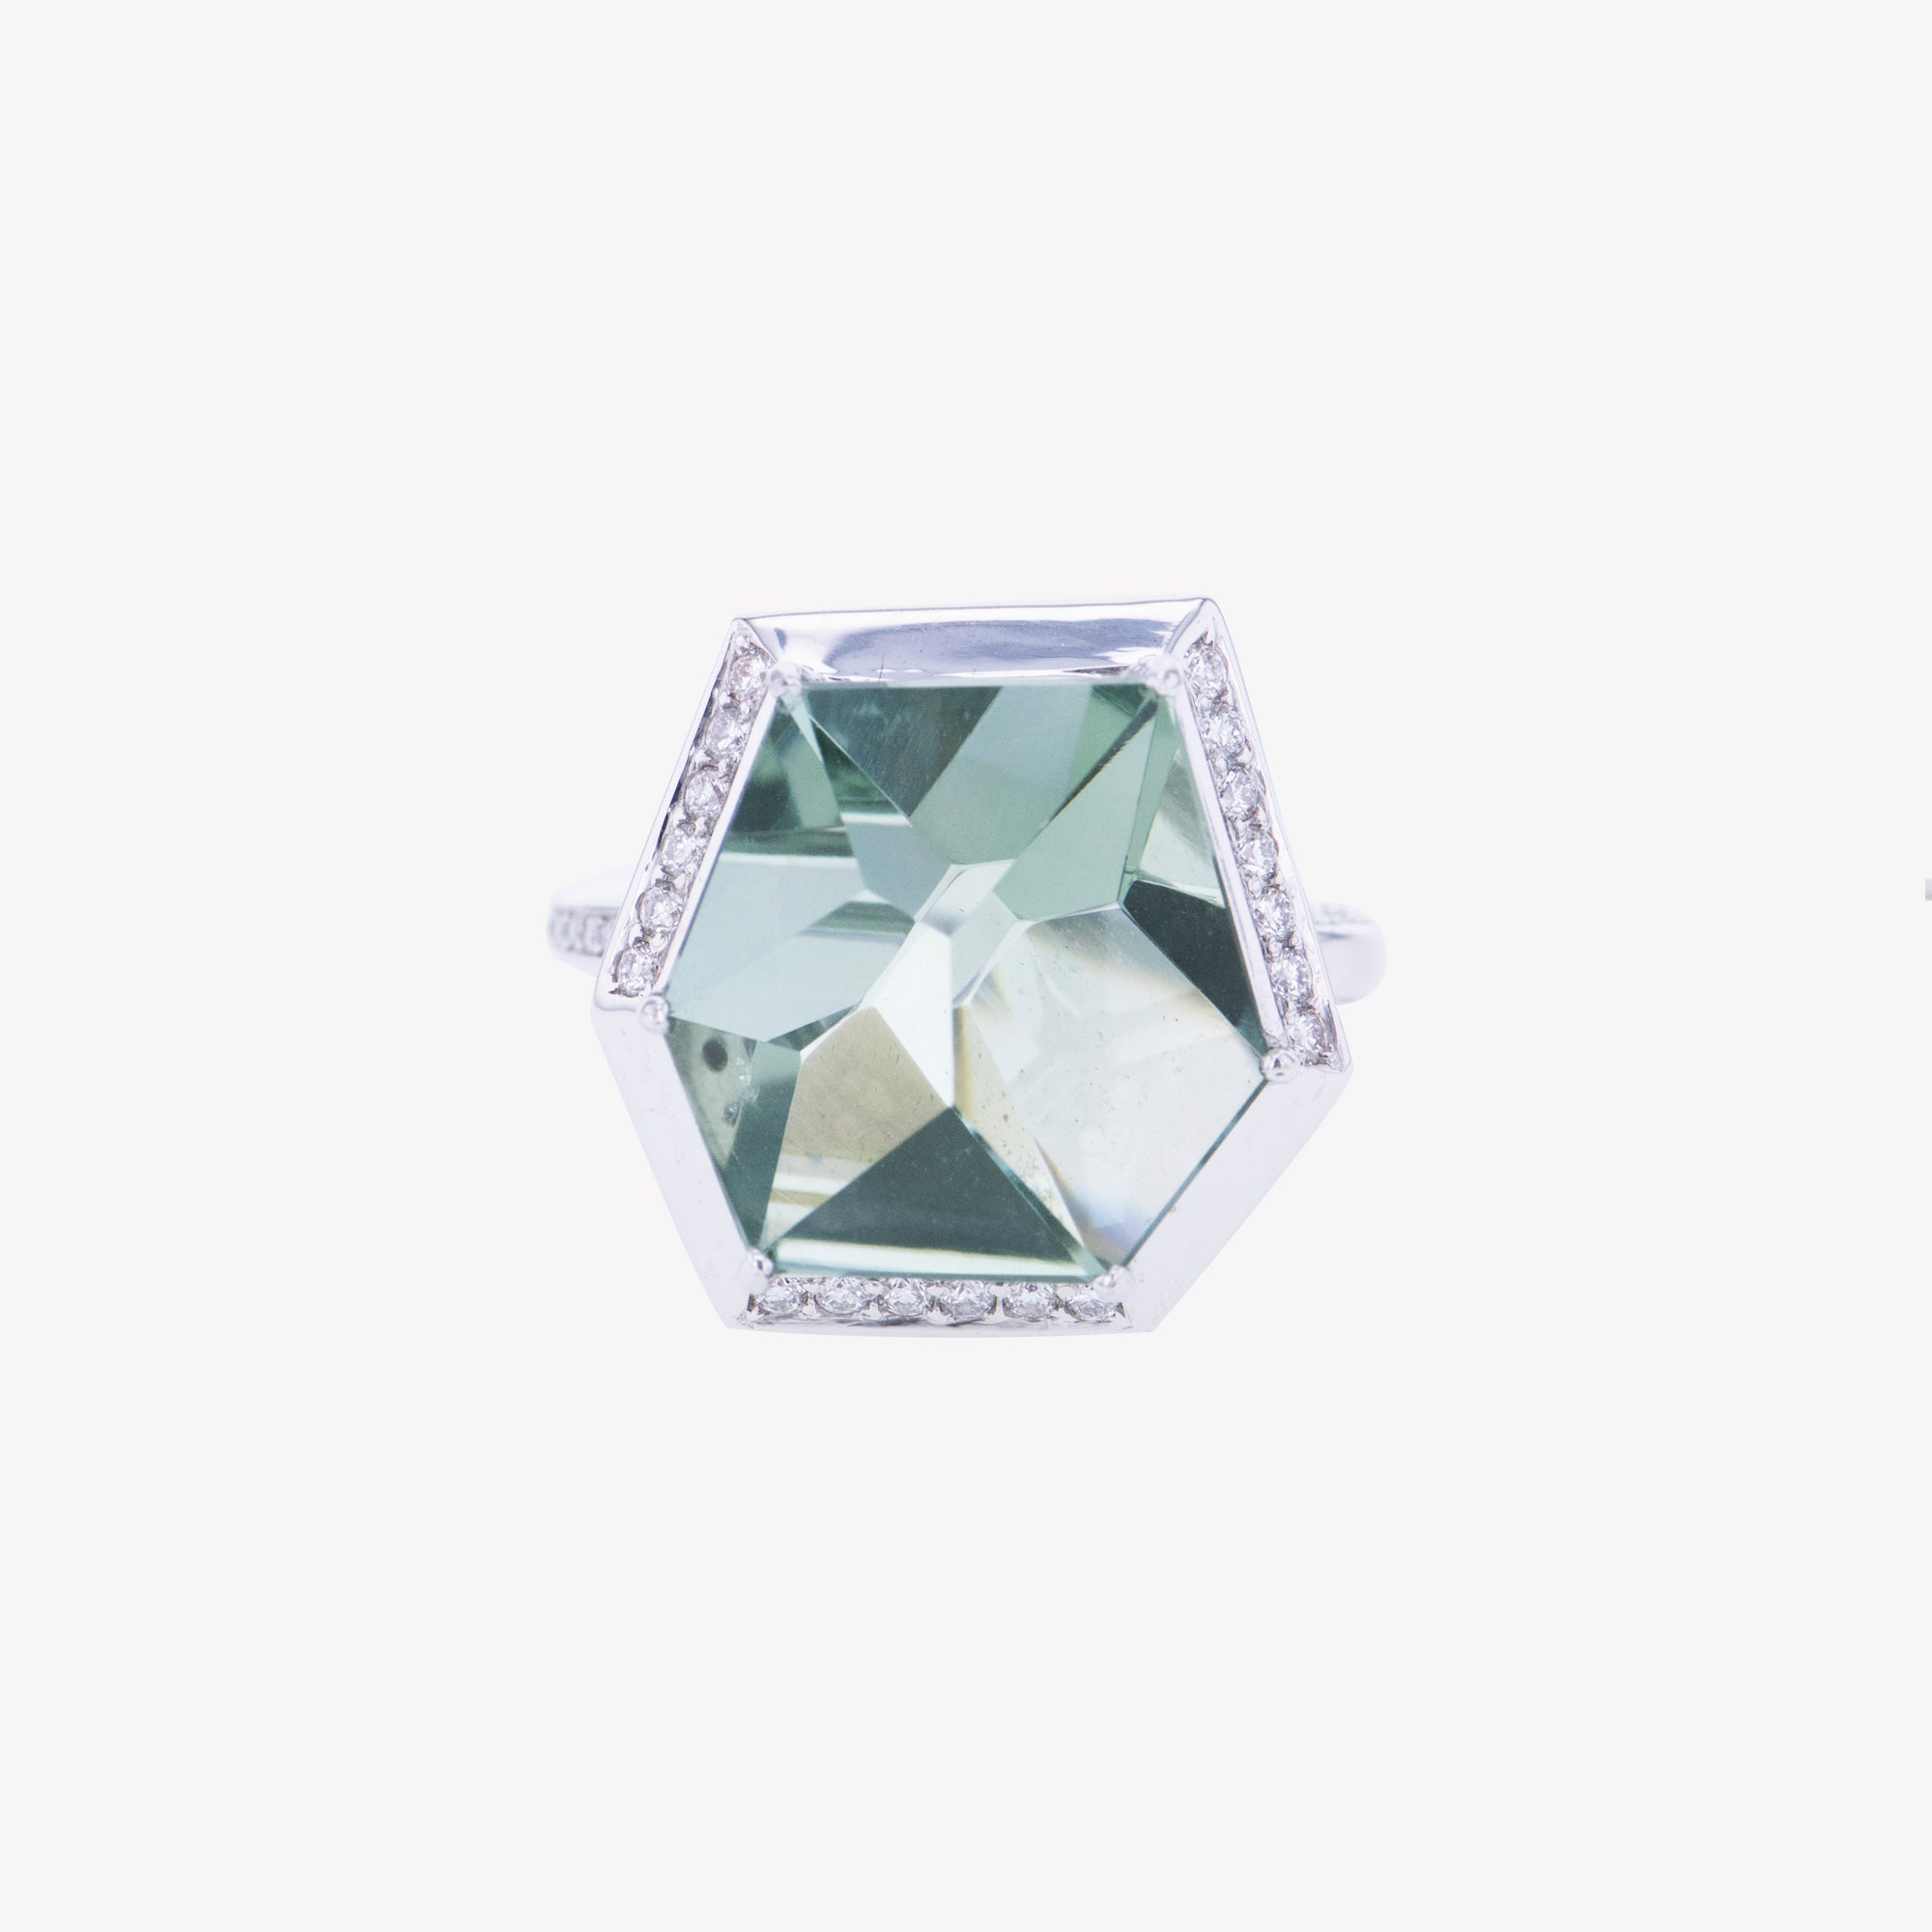 18K W/G Green Amethyst Diamond Ring